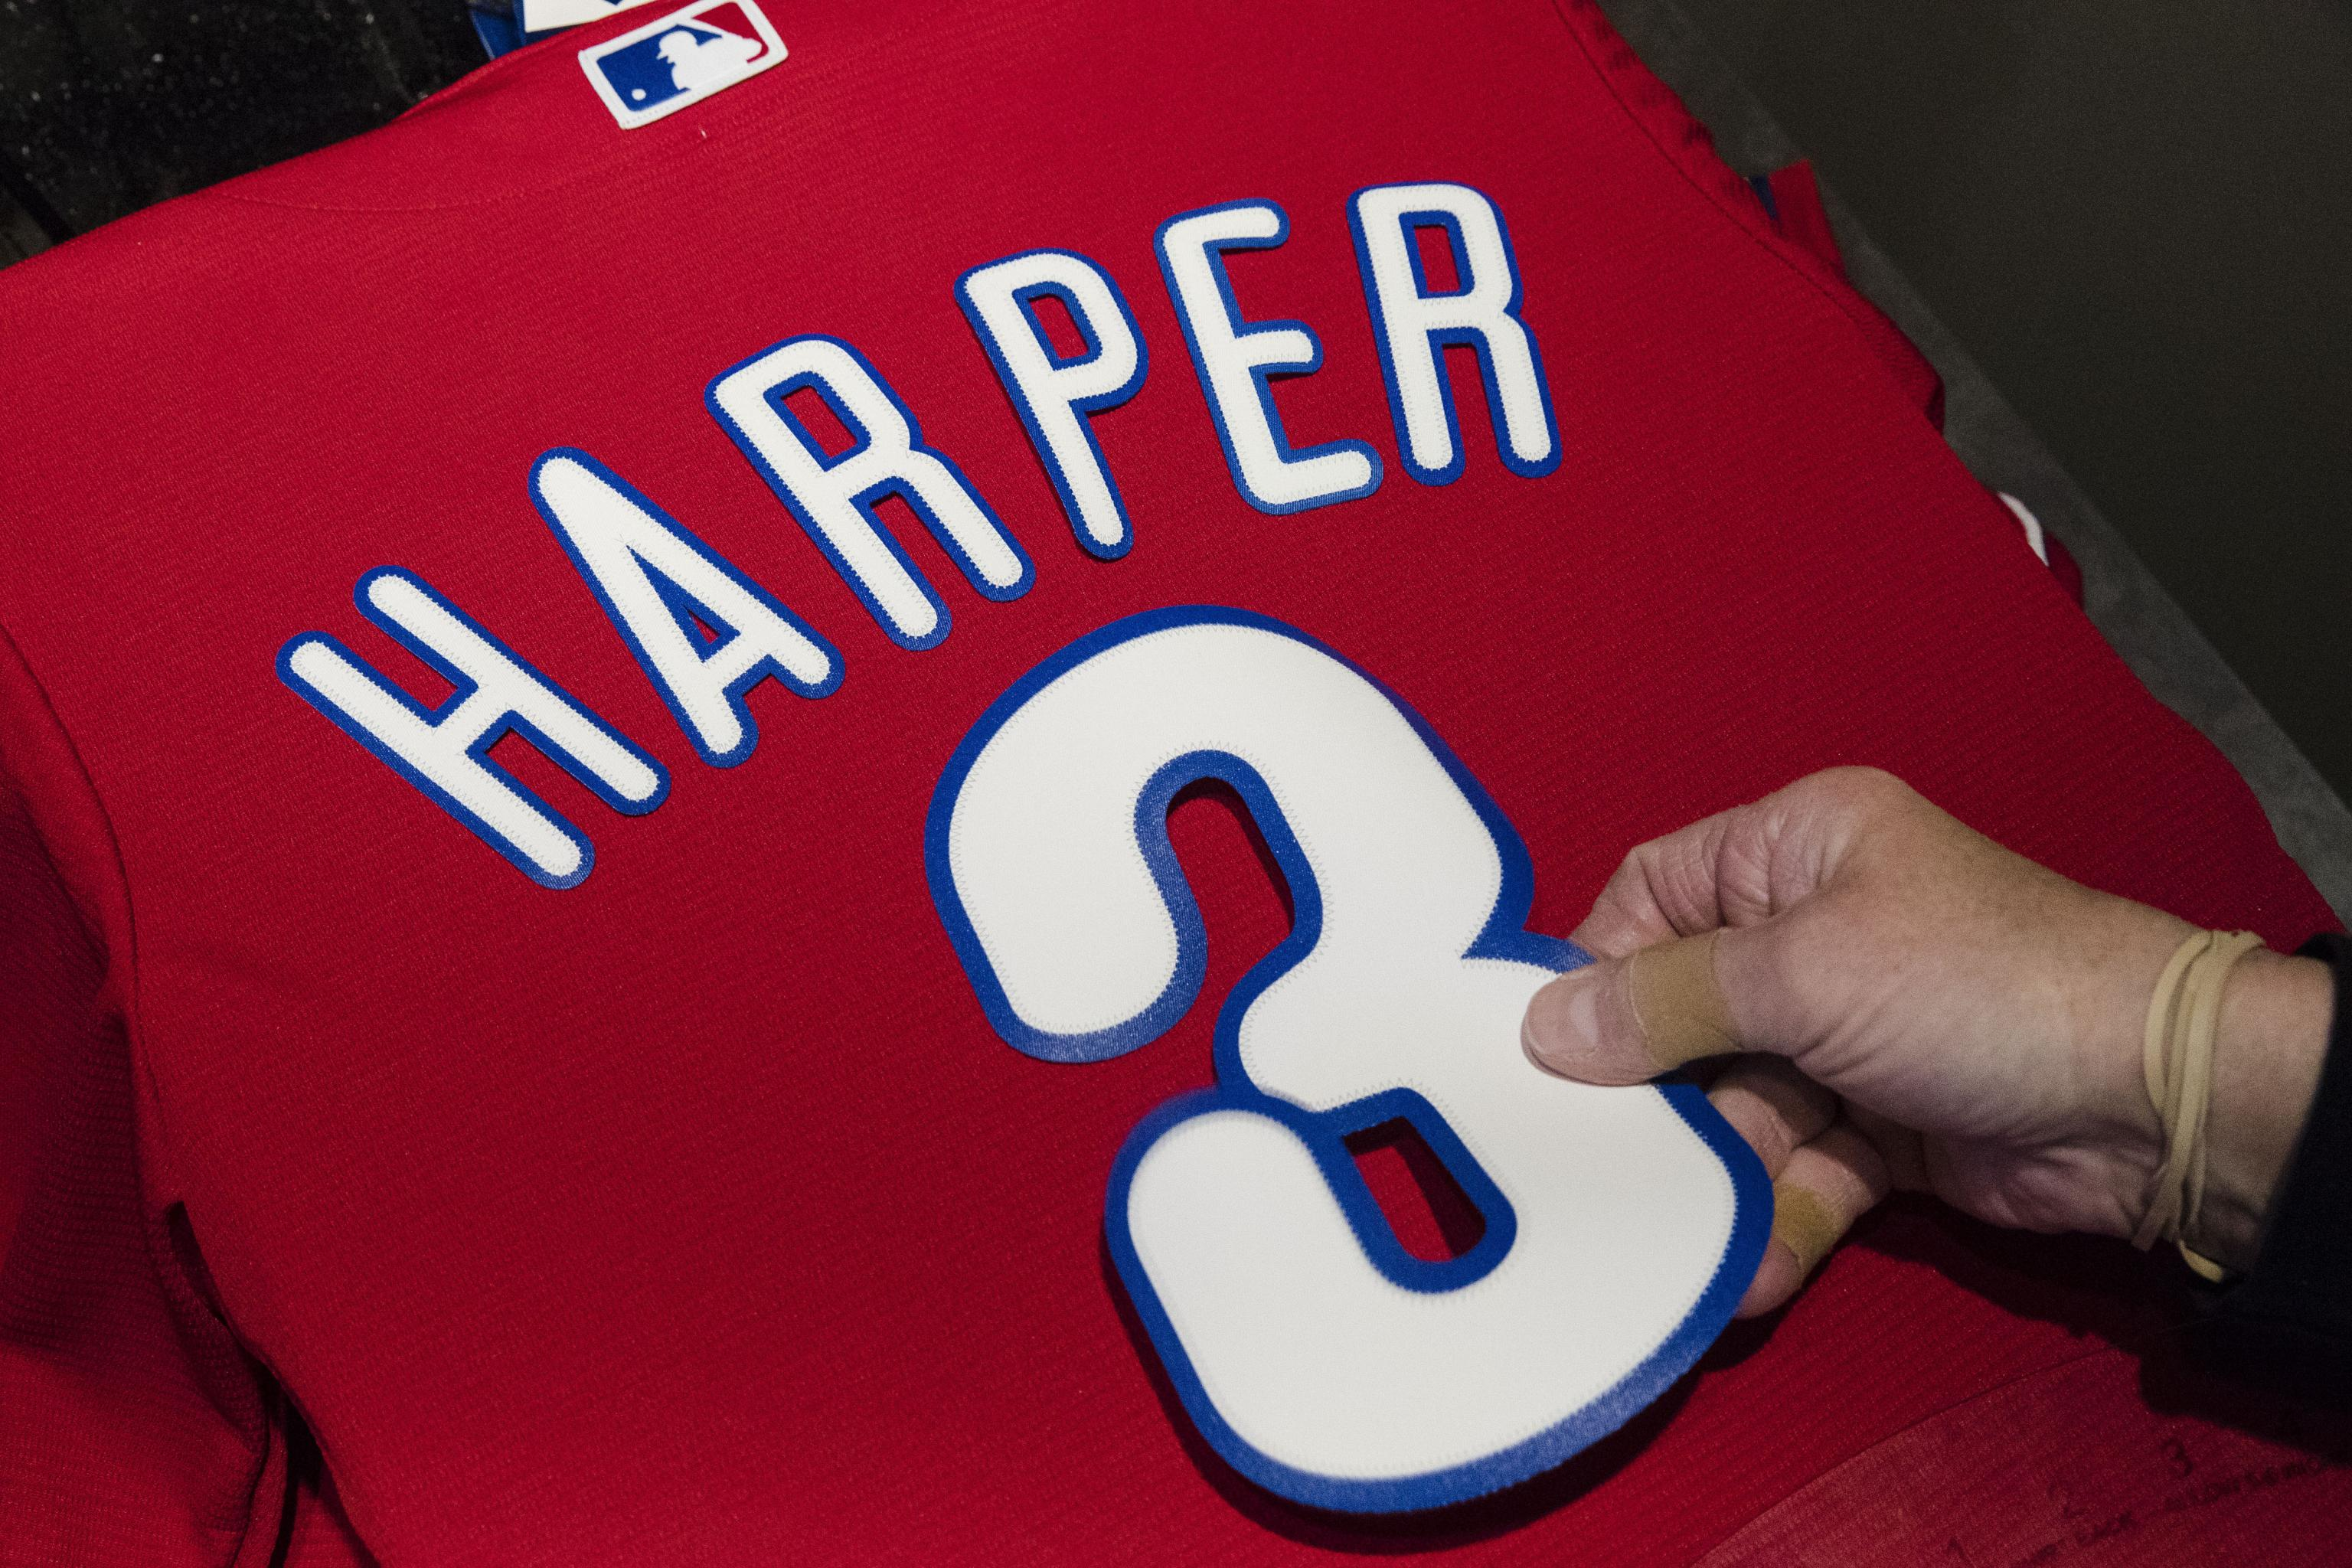 finest selection 0ce78 91755 Bryce Harper's Phillies Jersey Breaks 48-Hour Sales Record ...